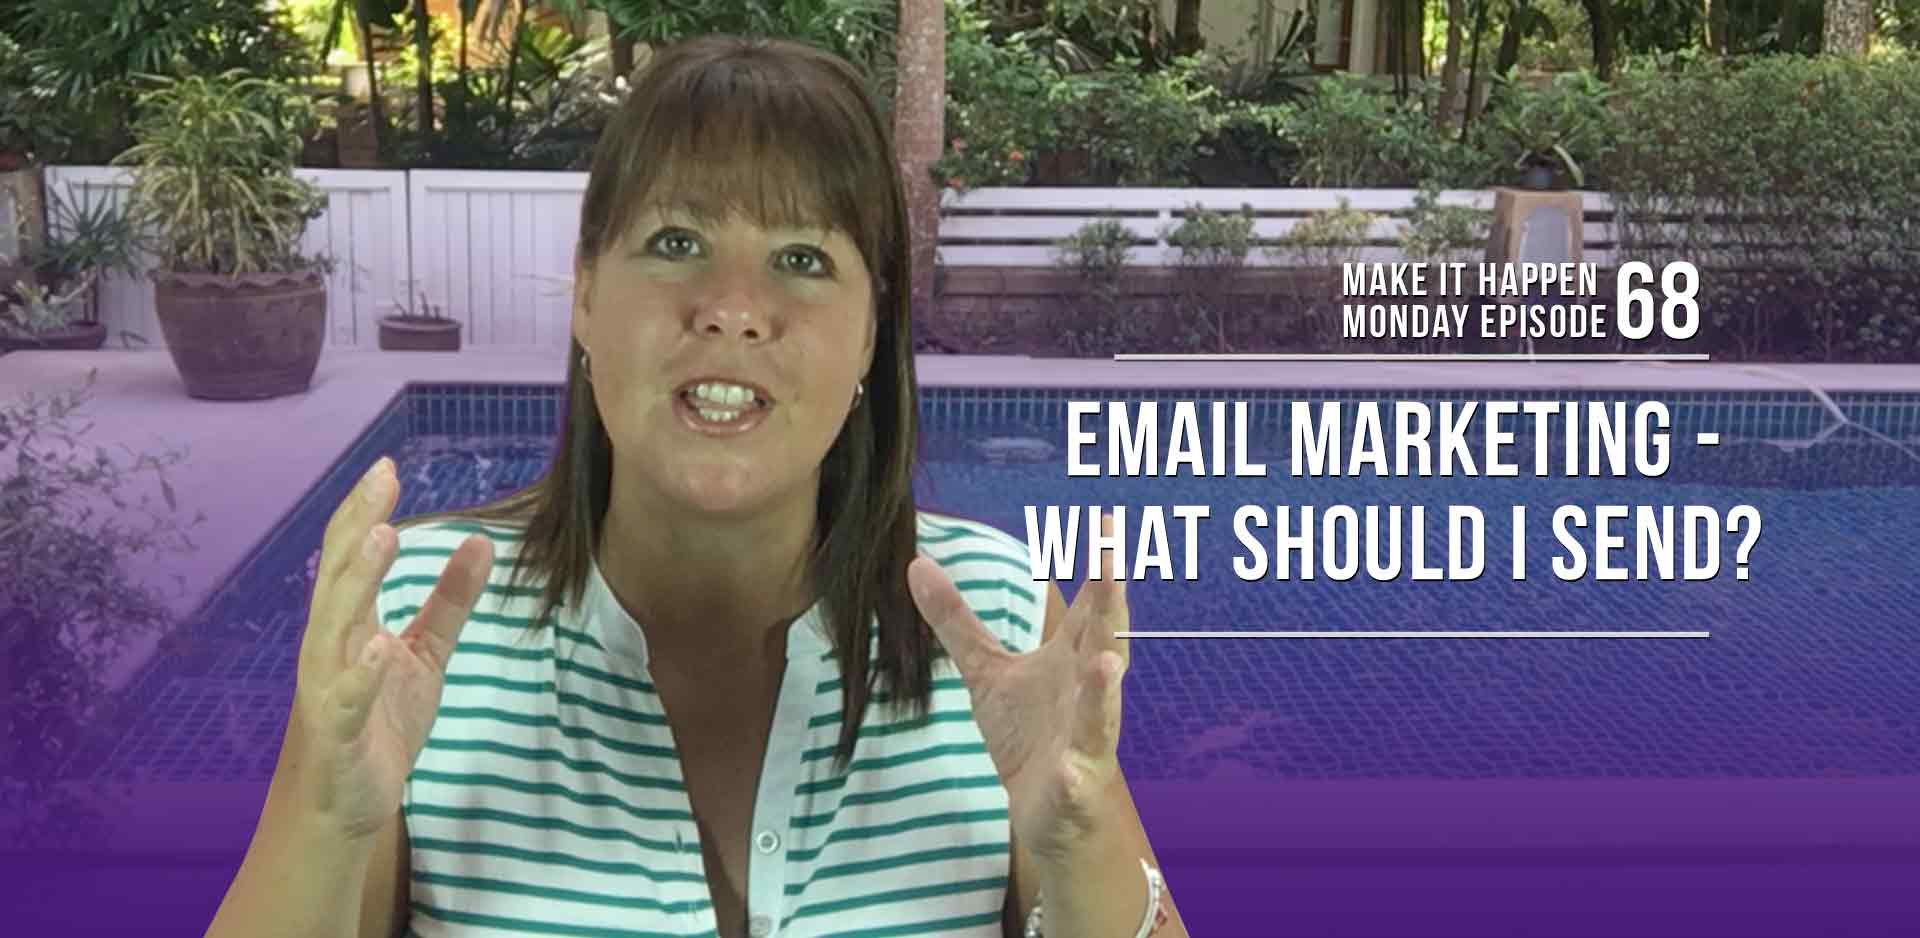 MIHM Ep68 - Email Marketing - What Should I Send?